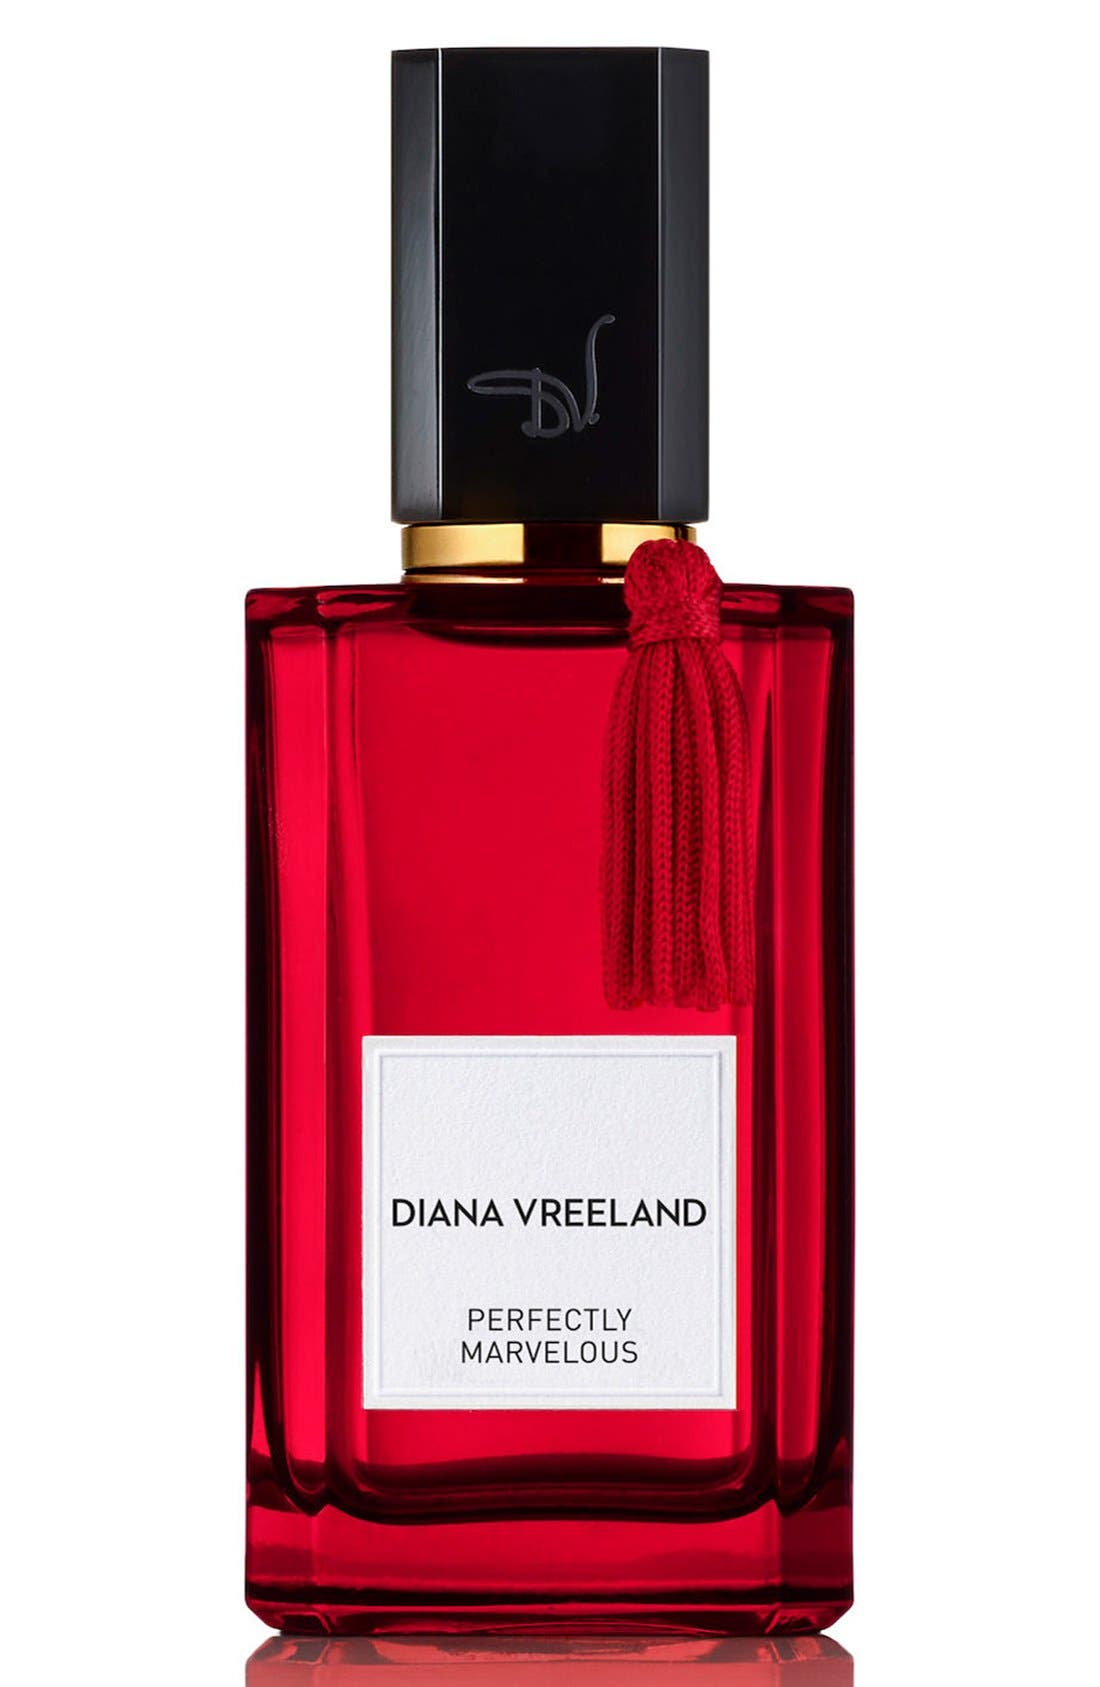 Diana Vreeland 'Perfectly Marvelous' Fragrance